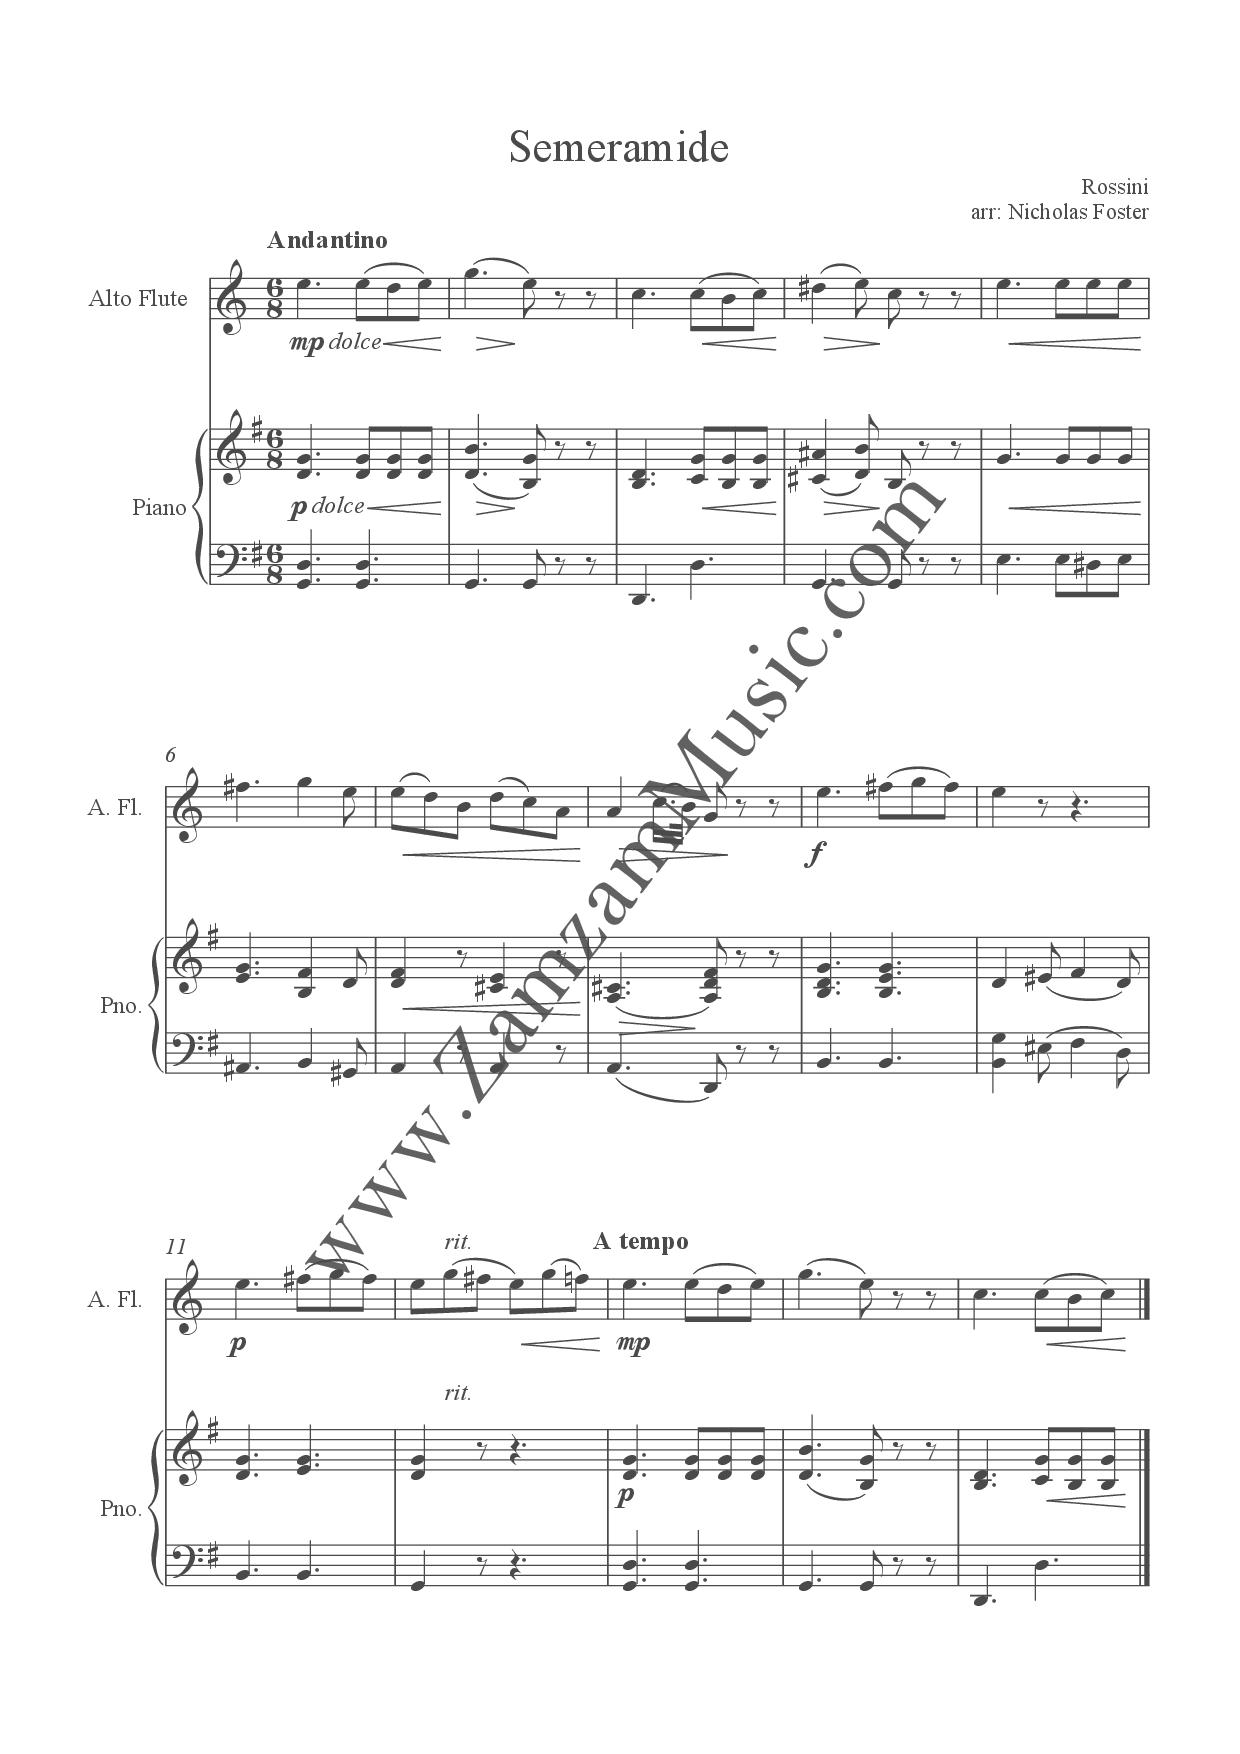 Various - Melodies from the Overtures for alto flute and piano  Easy to  Intermediate  - Zamzam Music